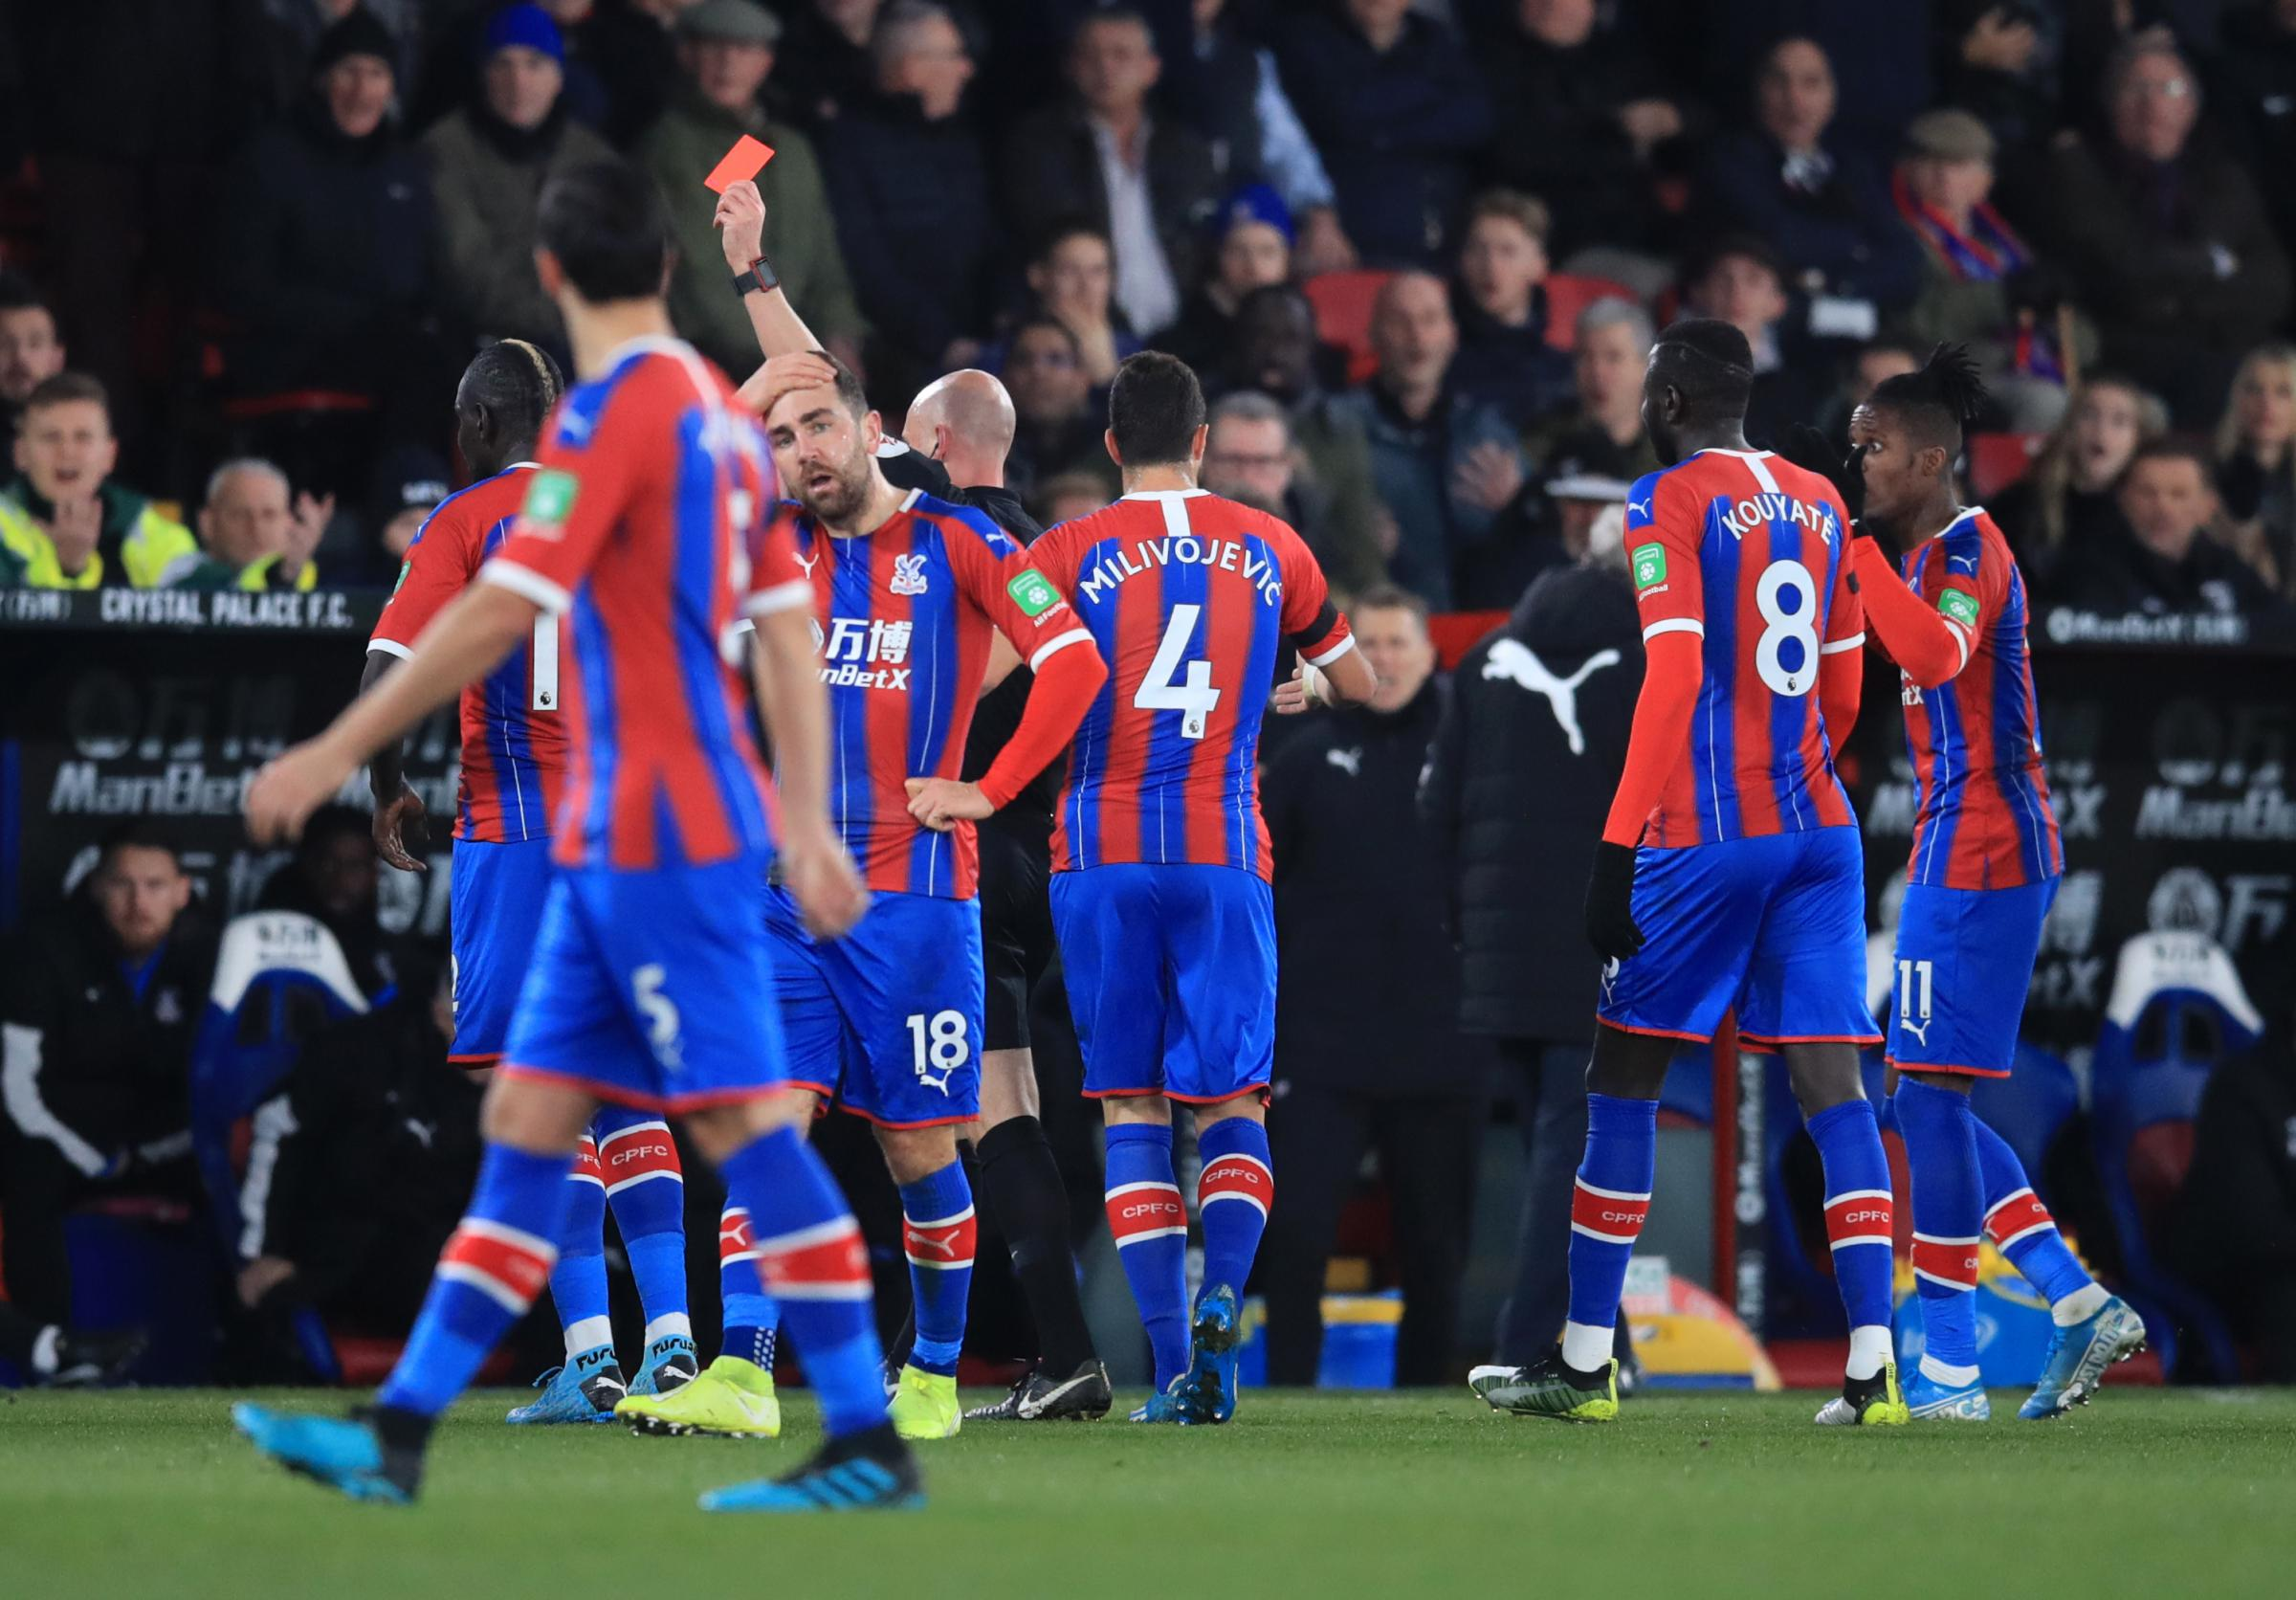 Fans split over Sakho's red card in Crystal Palace's 1-0 win over Bournemouth